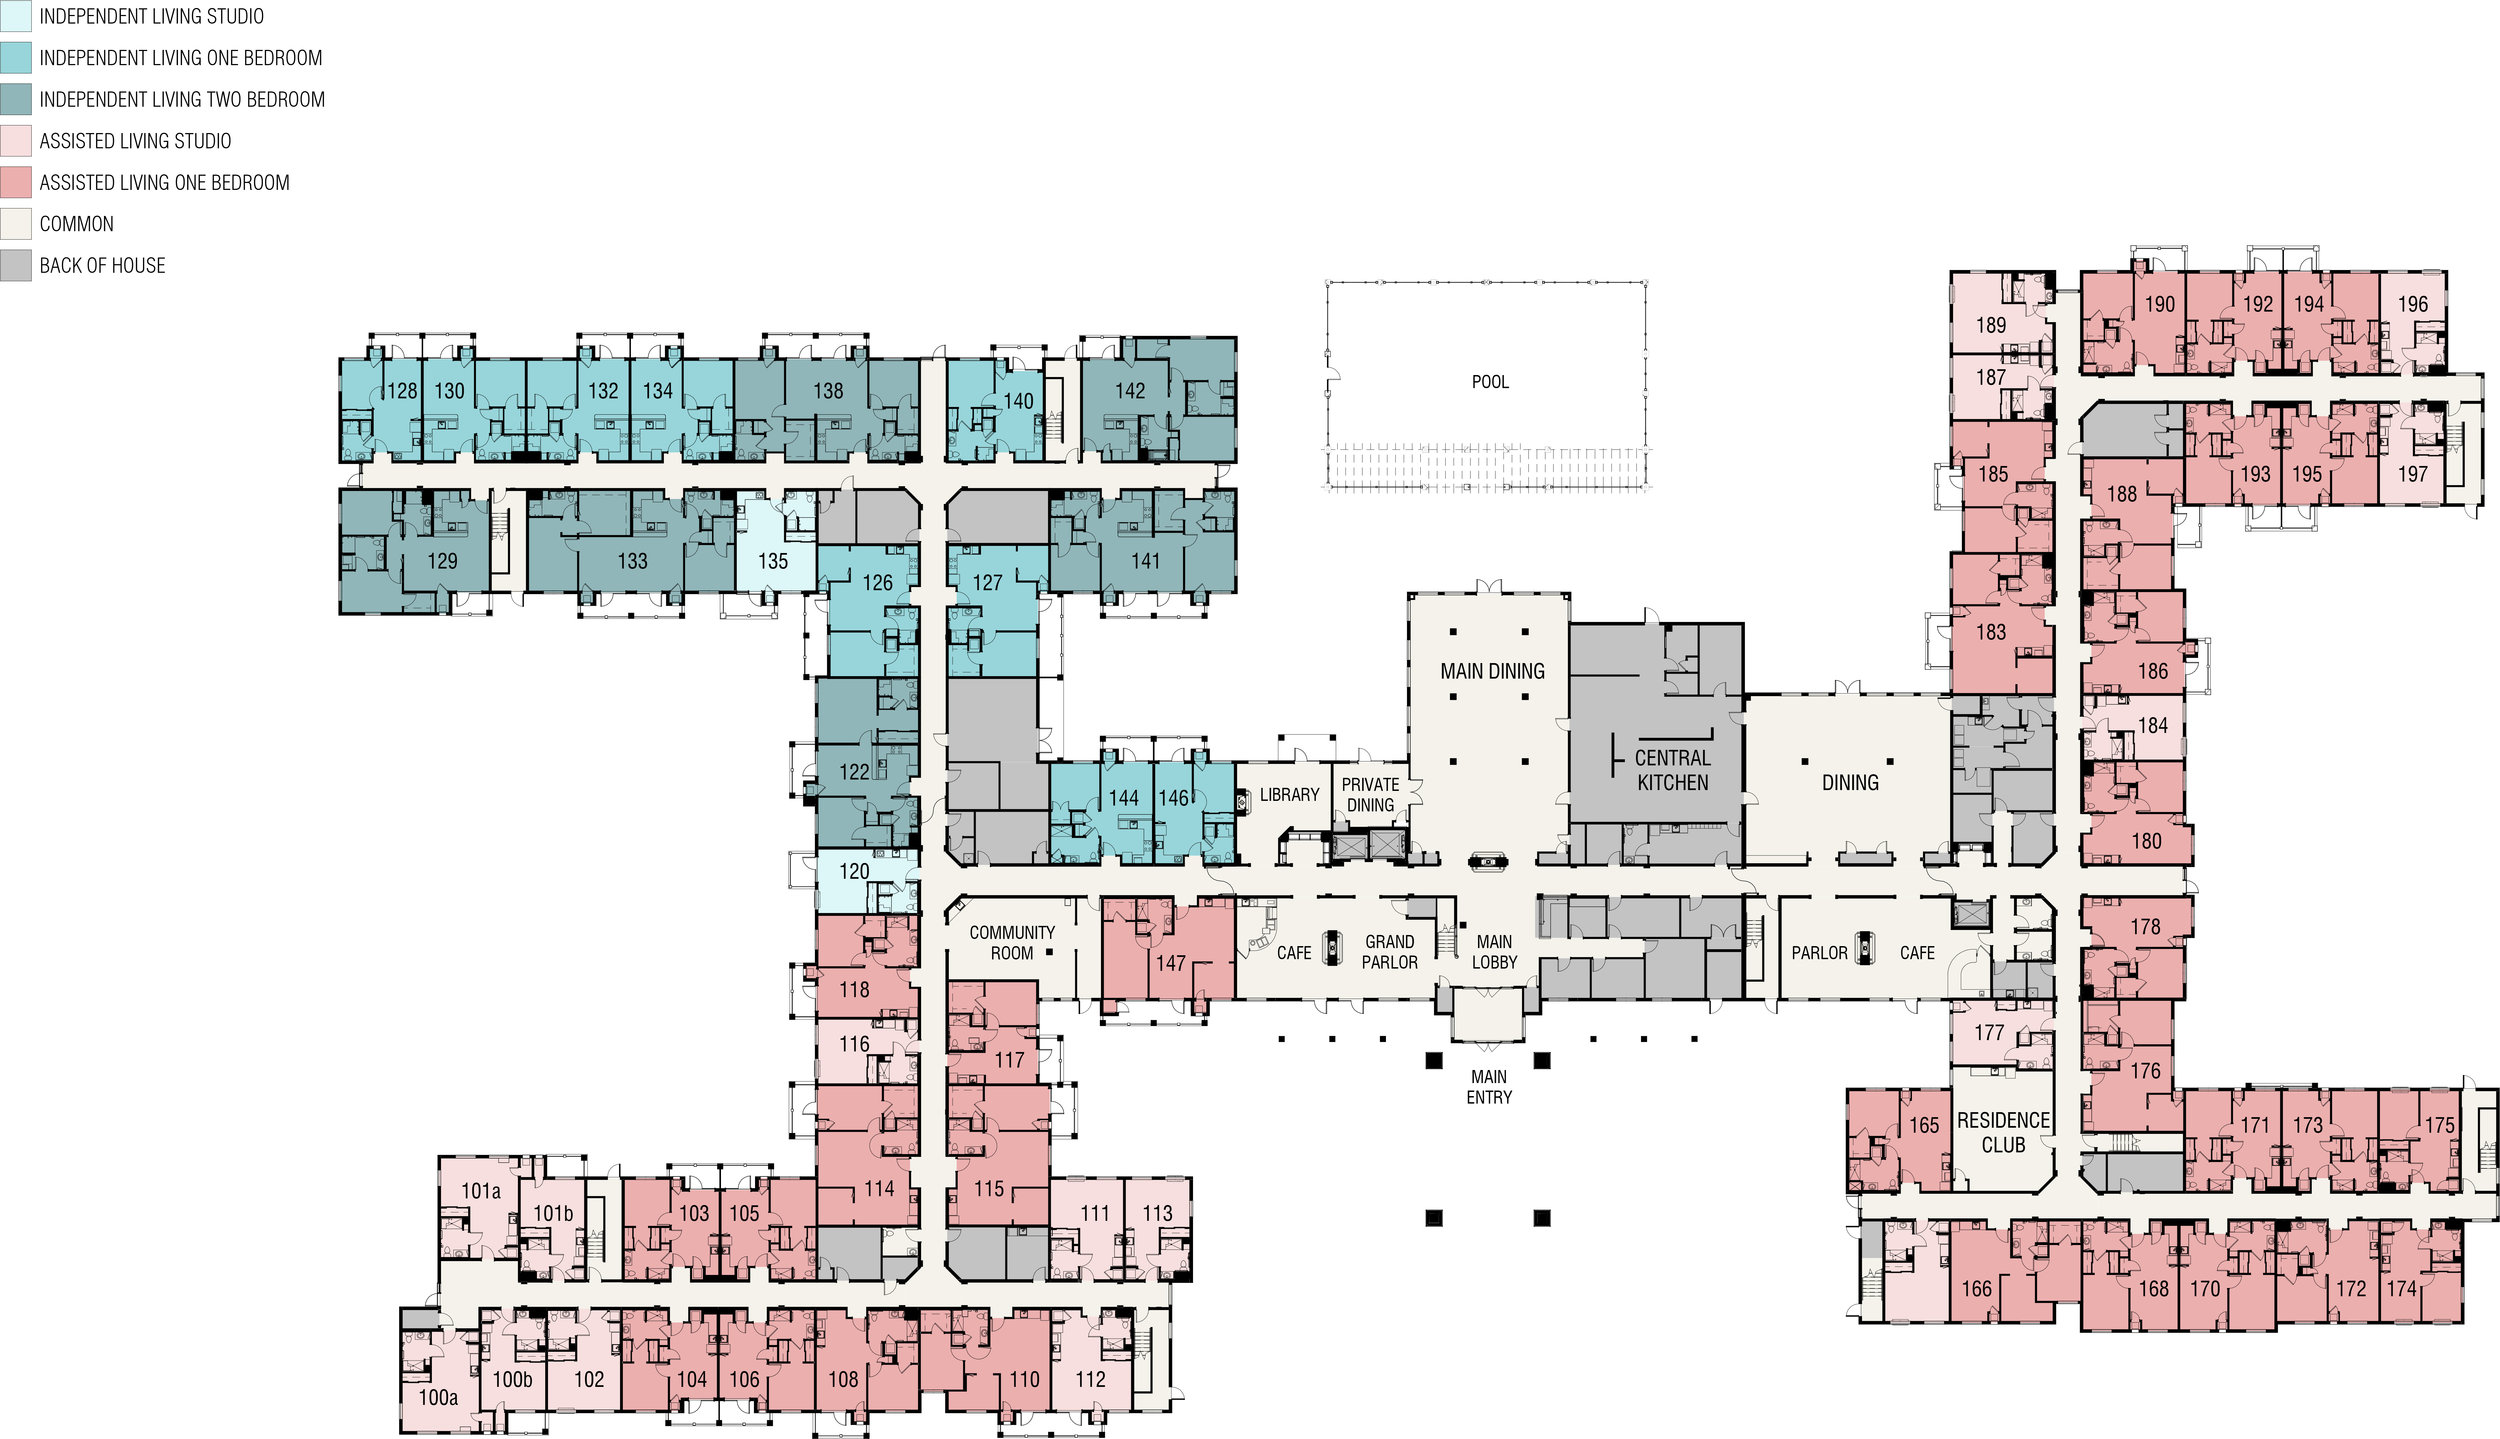 Round Rock Independent Living & Assisted Living Floor Plan.jpg